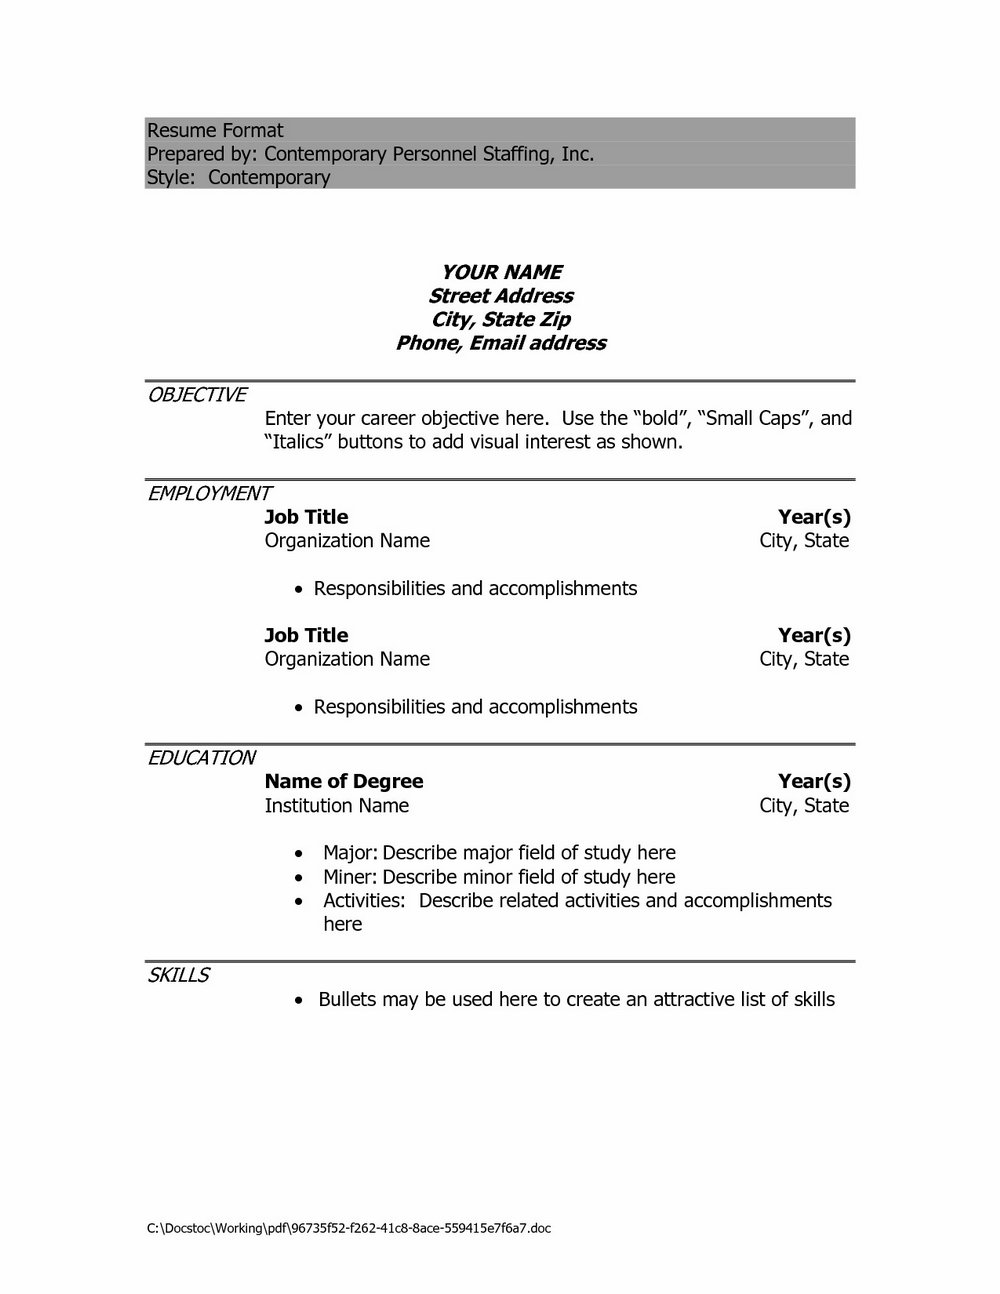 Simple Resume Format Pdf For Freshers